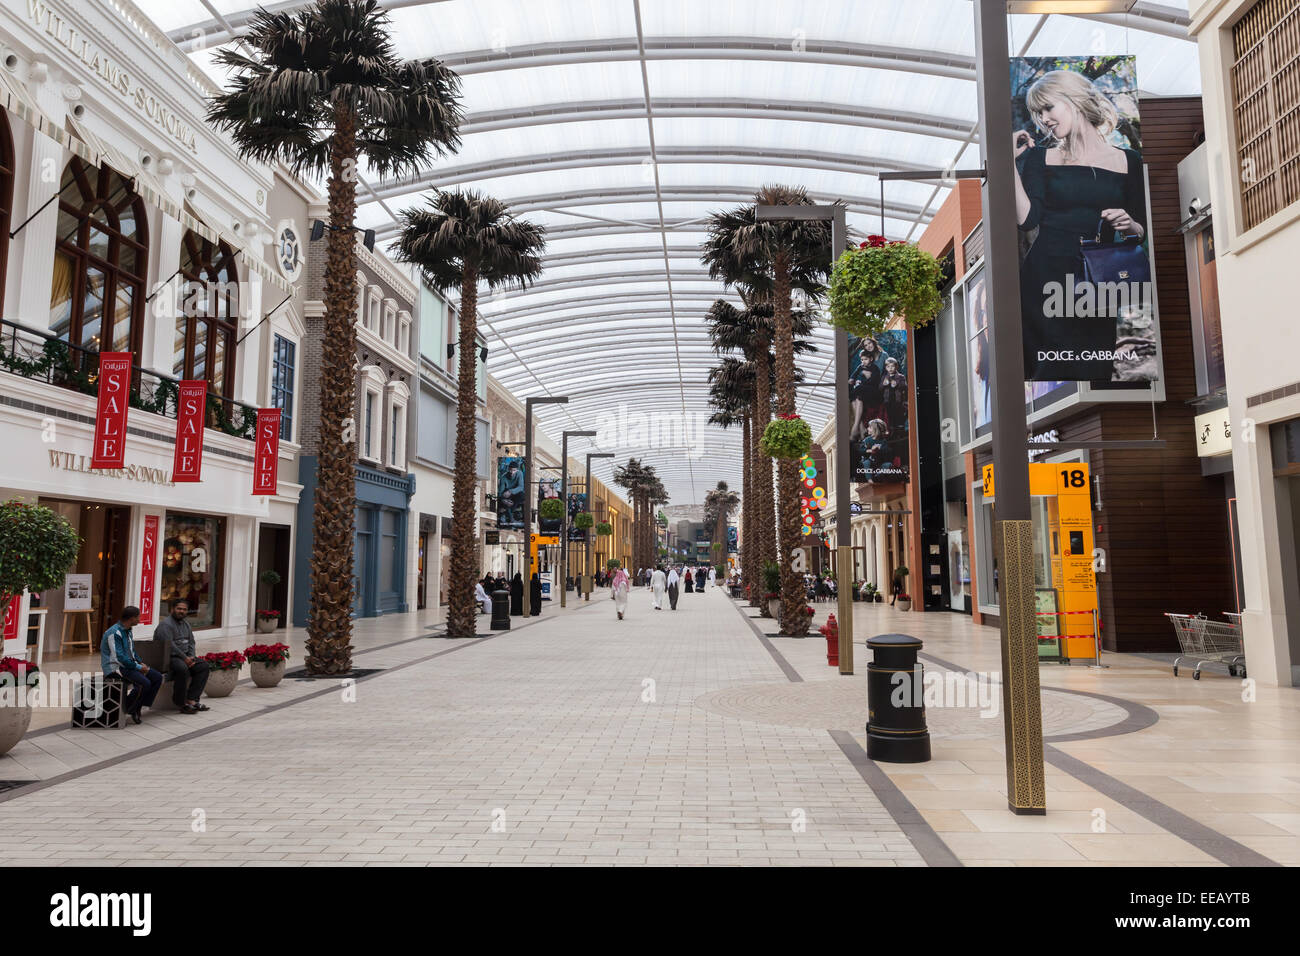 The Avenues Mall in Kuwait - Stock Image